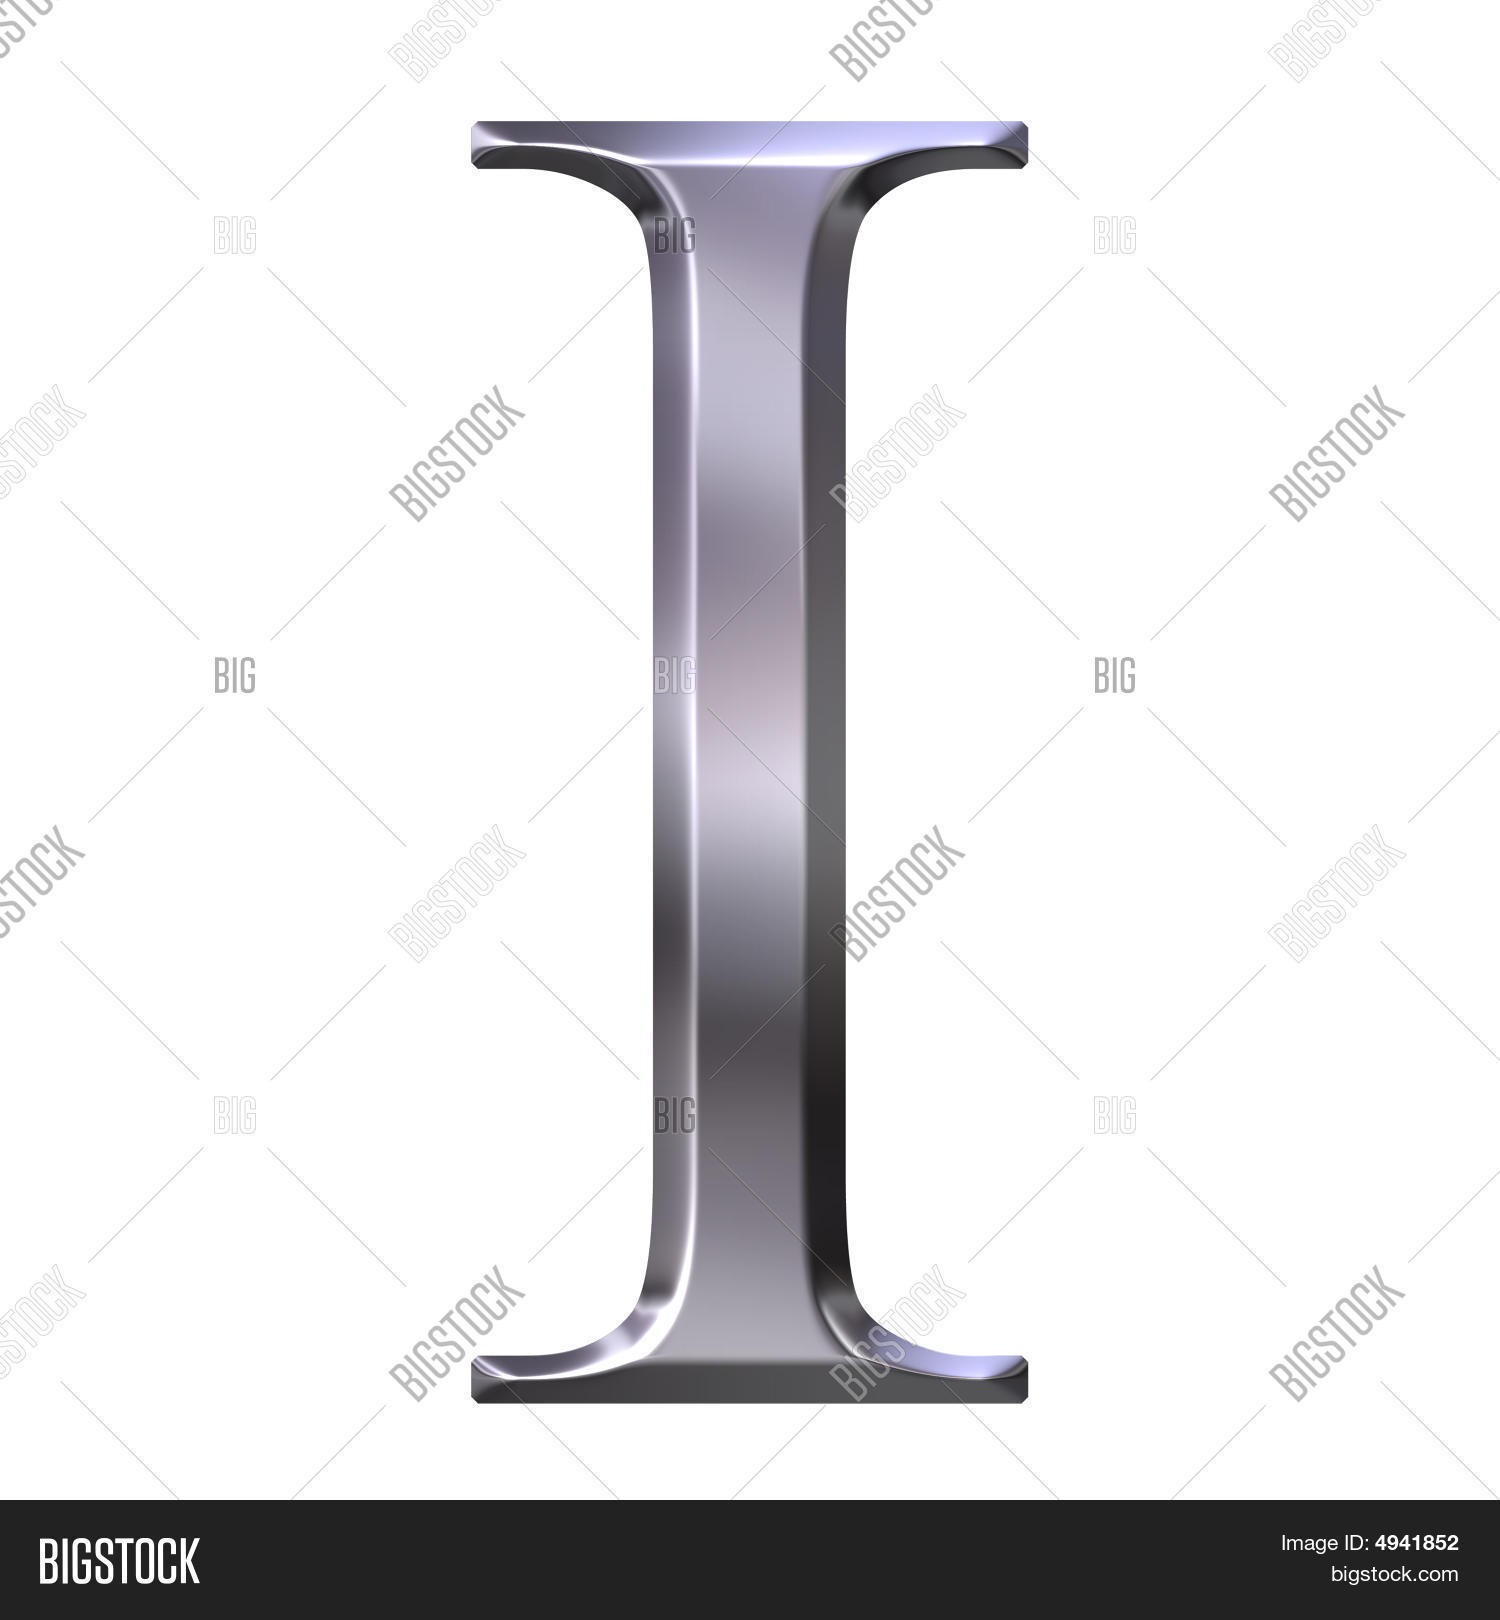 3d silver greek letter iota image photo bigstock 3d silver greek letter iota buycottarizona Images